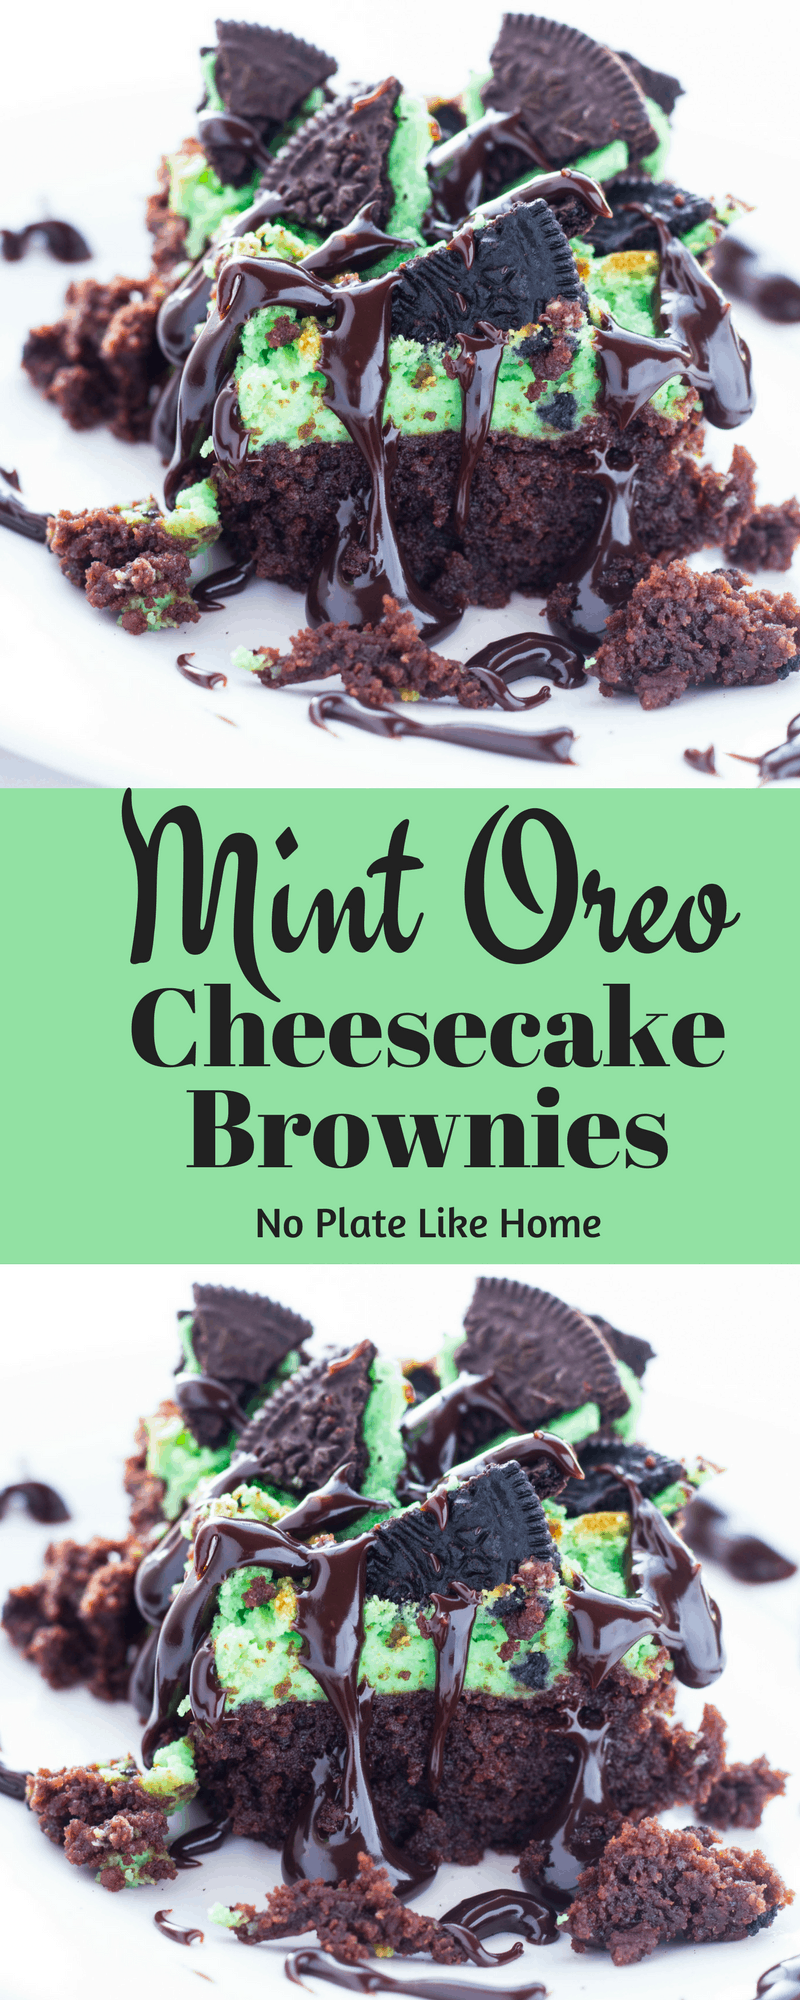 Mint Oreo Cheesecake Brownies